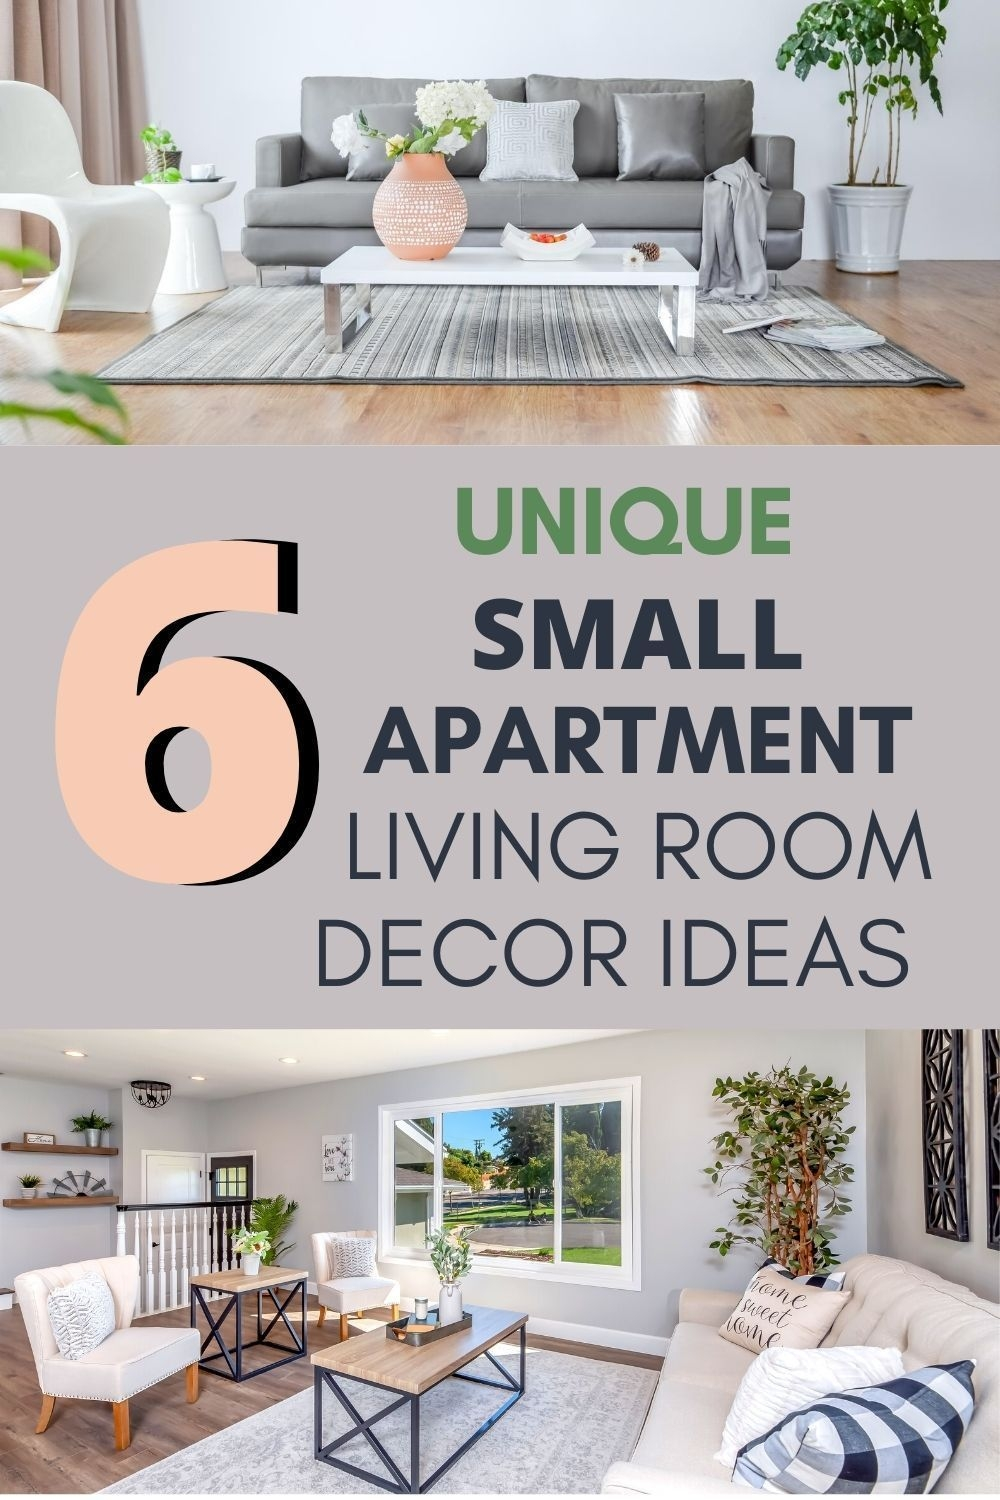 Decorative Small Apartment Decorating Ideas On A Budget On